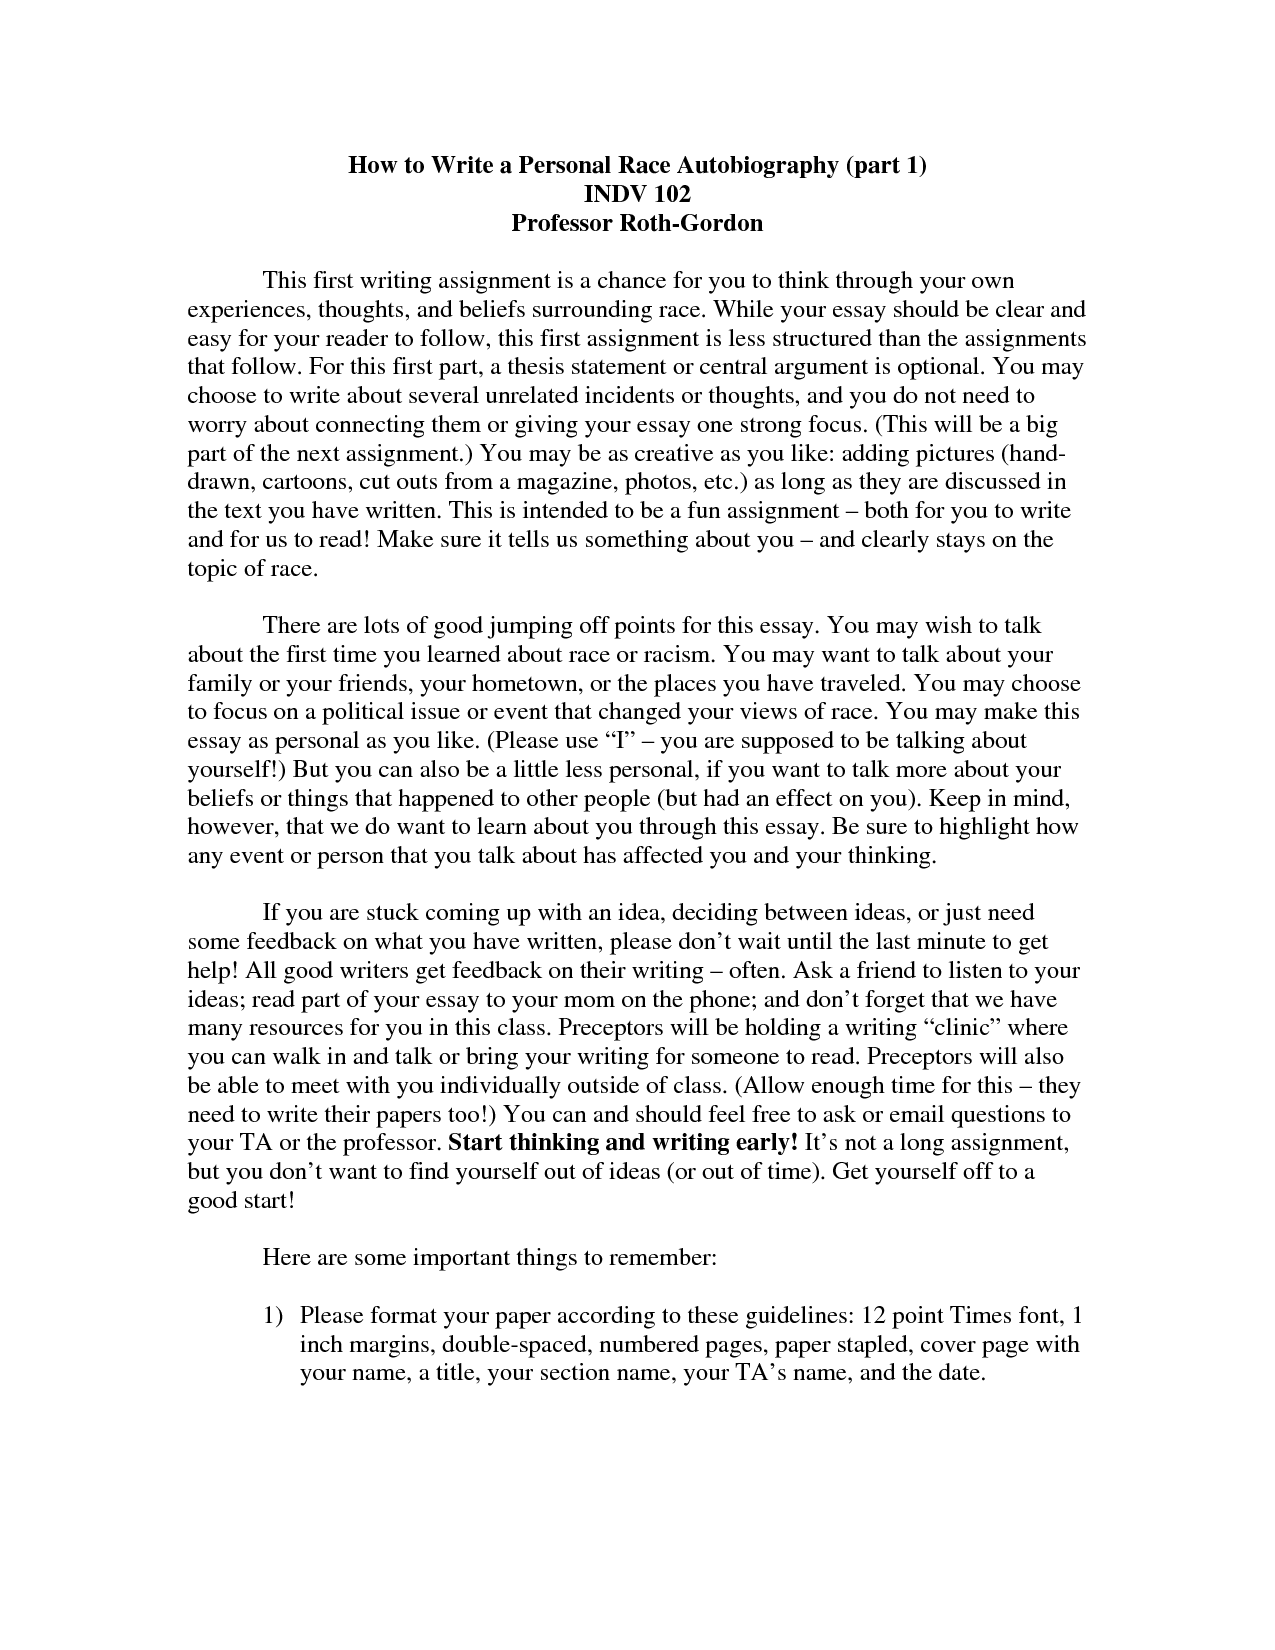 014 Essay Example How To Start Autobiography About Yourself Write Autobiographical For Scholarship College Biographical Examples On Make Narrative Myself Singular An Annotated Bibliography A Good Full